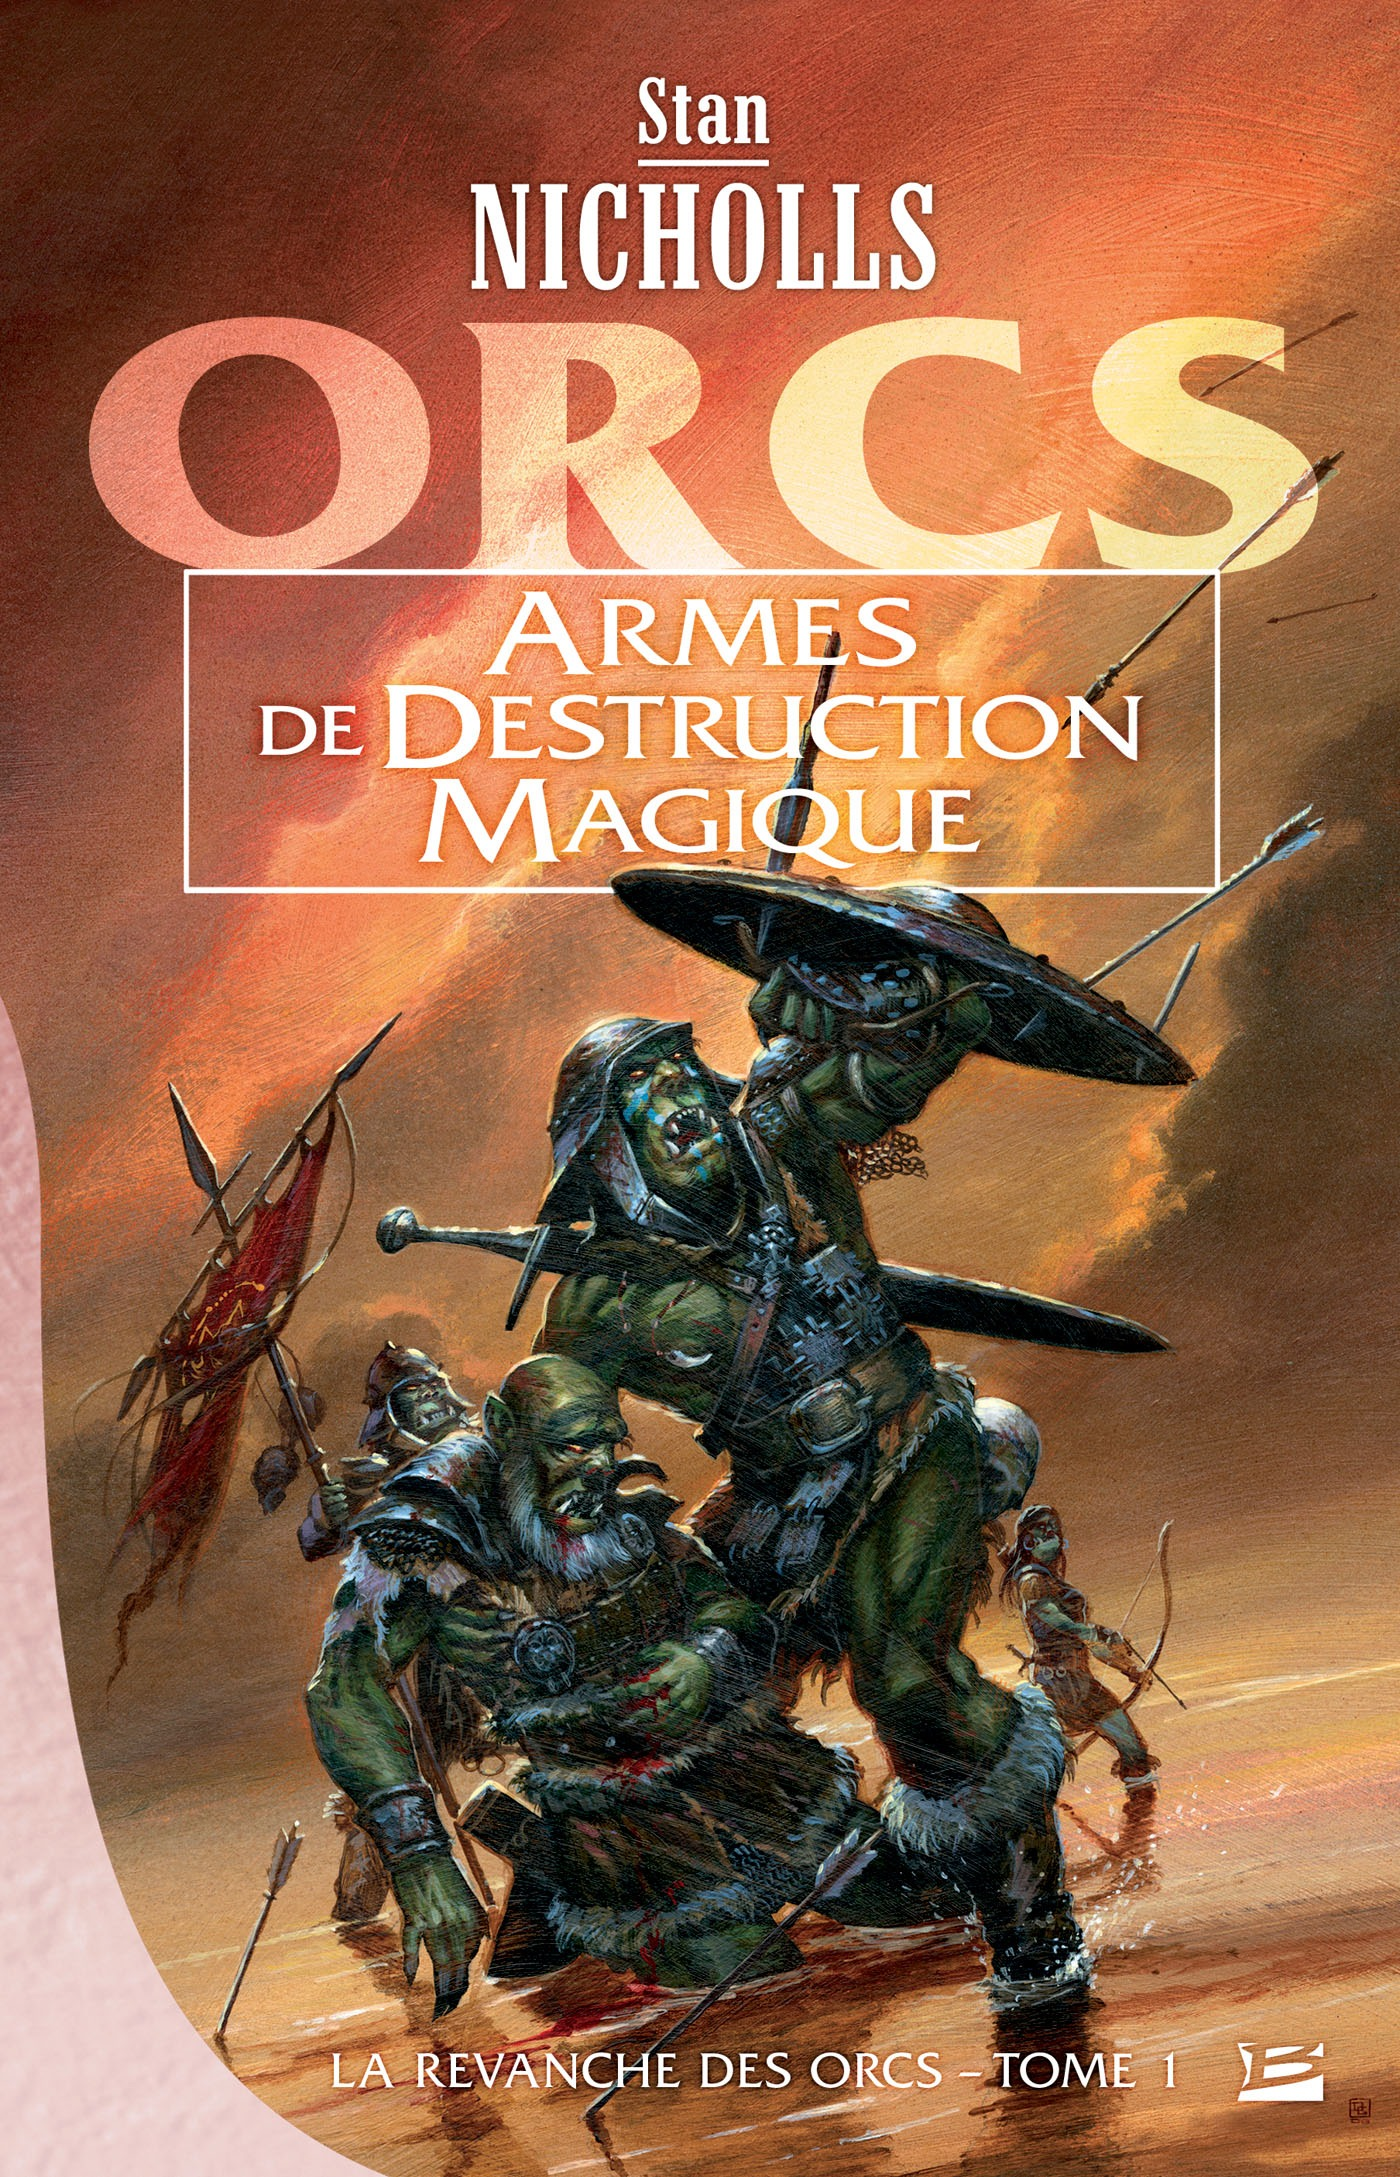 Armes de destruction magique, LA REVANCHE DES ORCS, T1